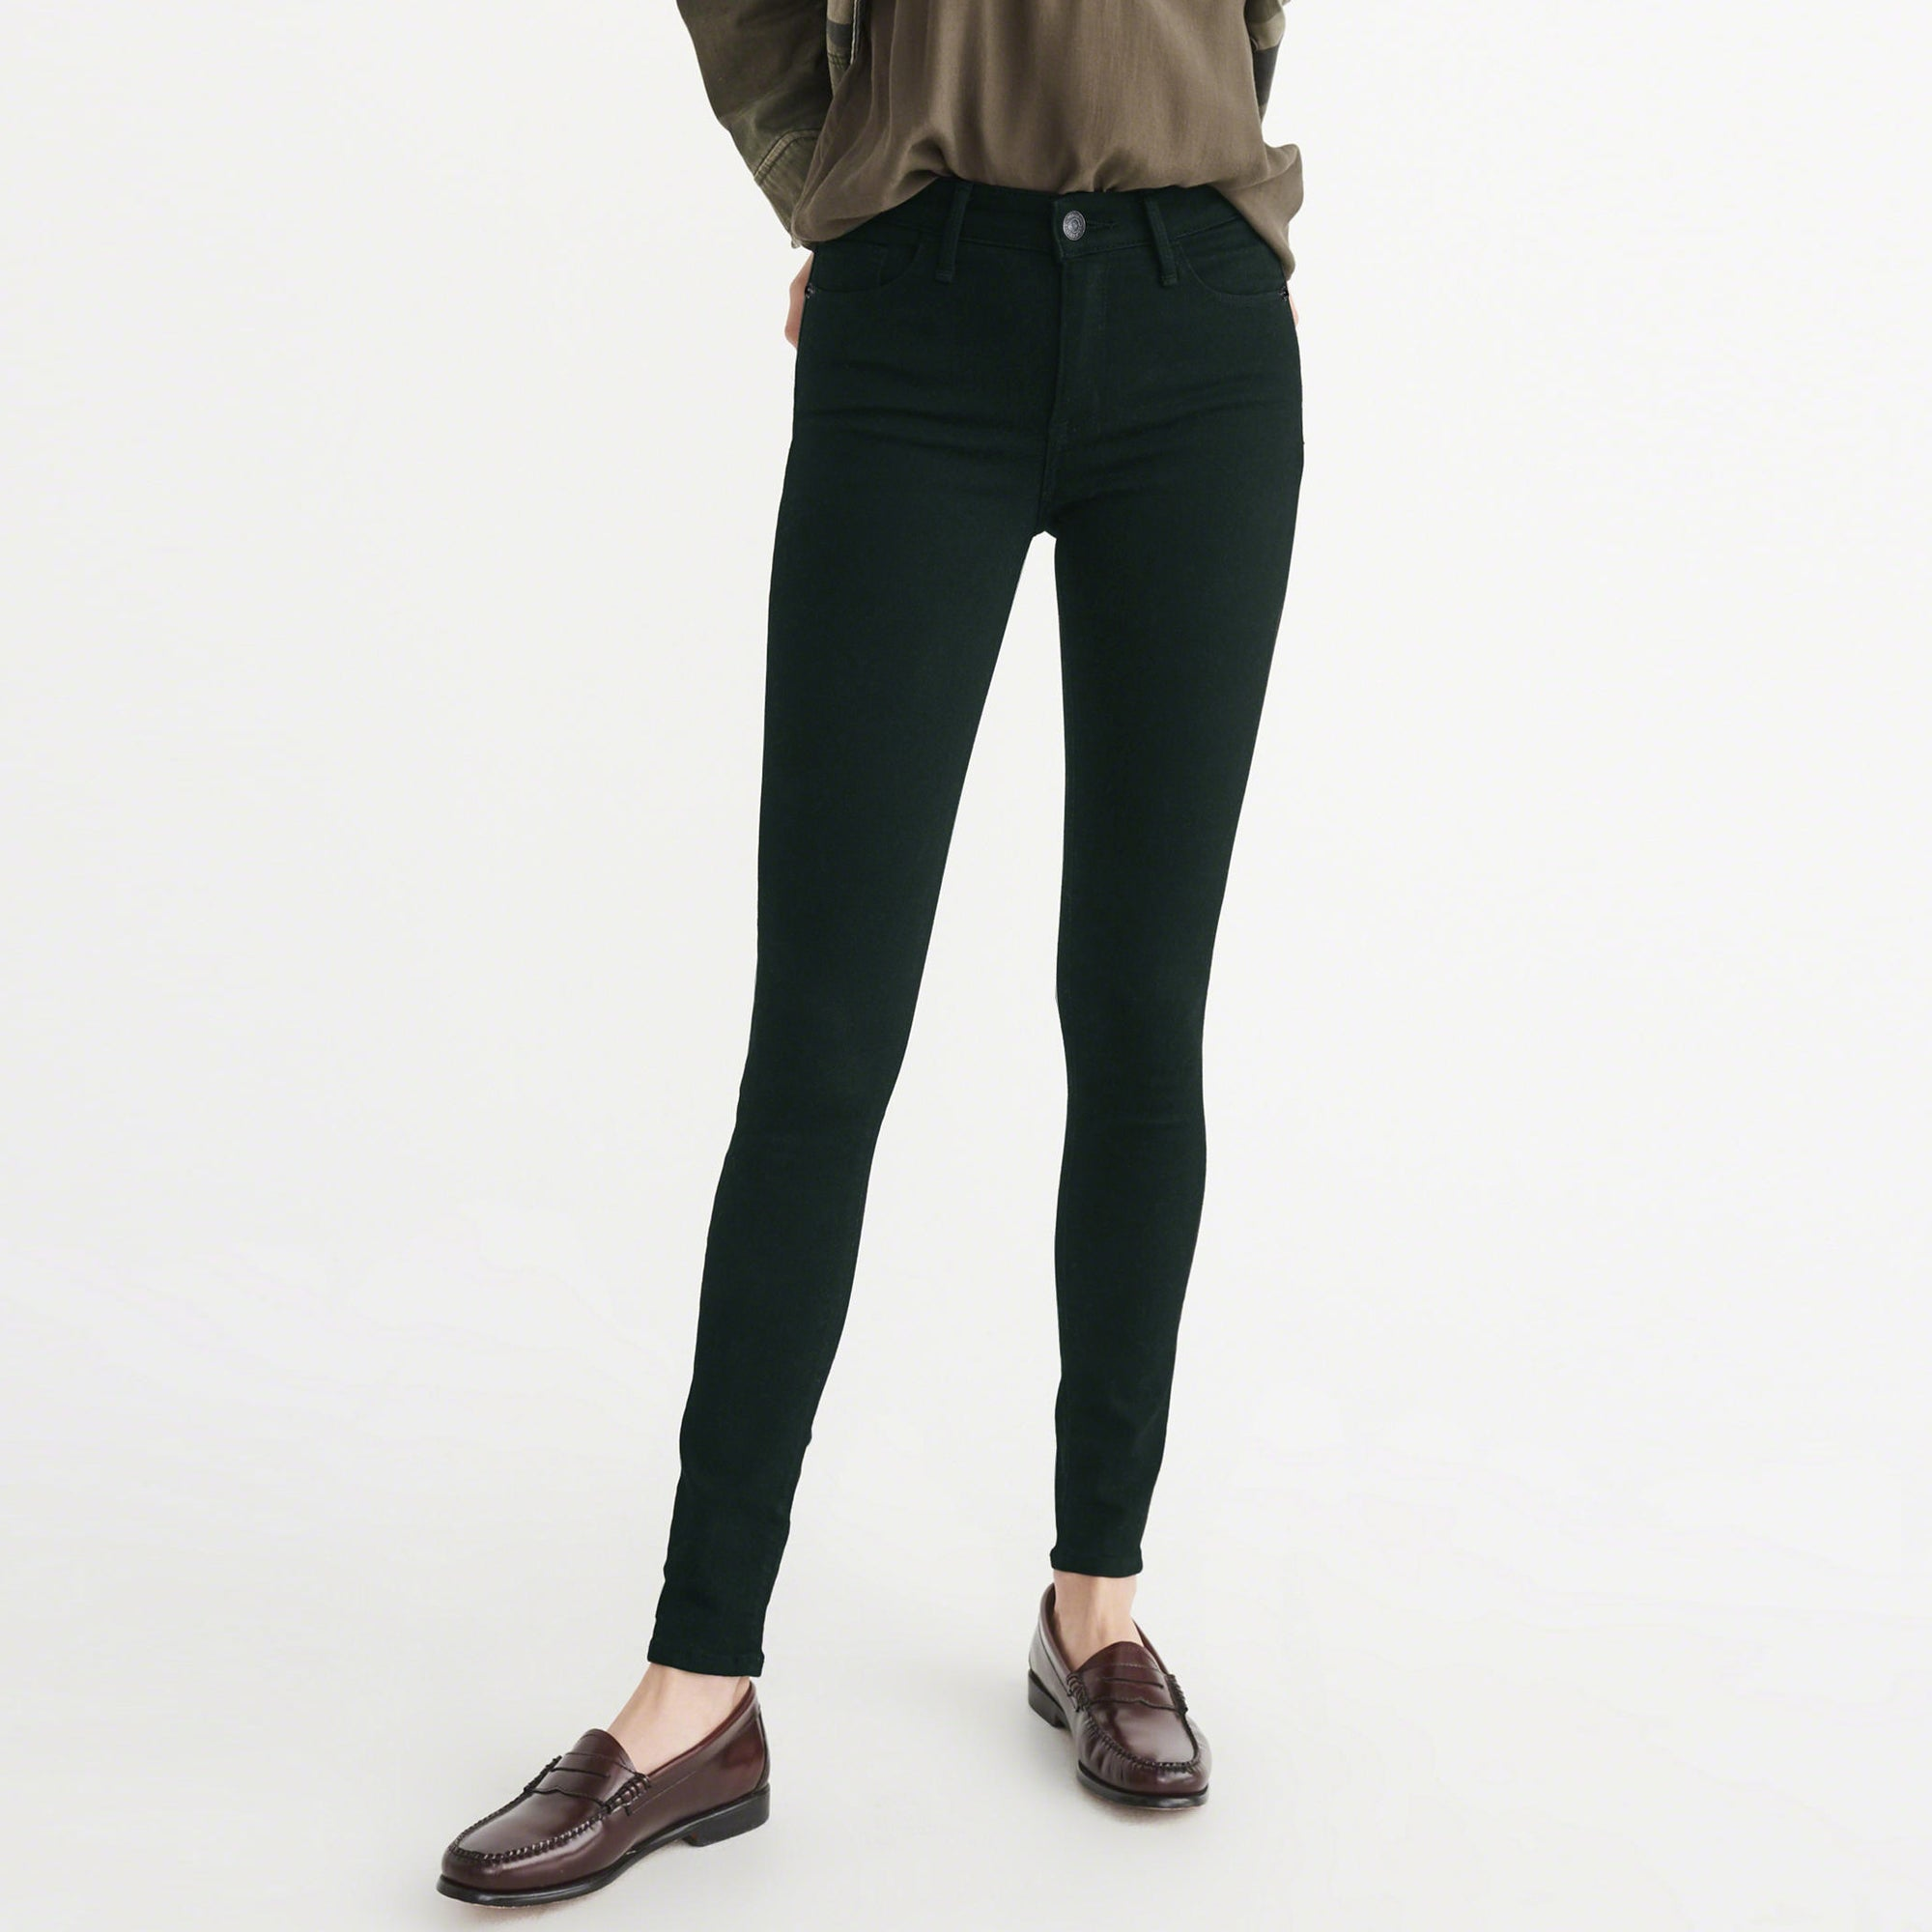 OLD NAVY Stretch Skinny Fit Denim For Ladies-Dark Green-NA7986